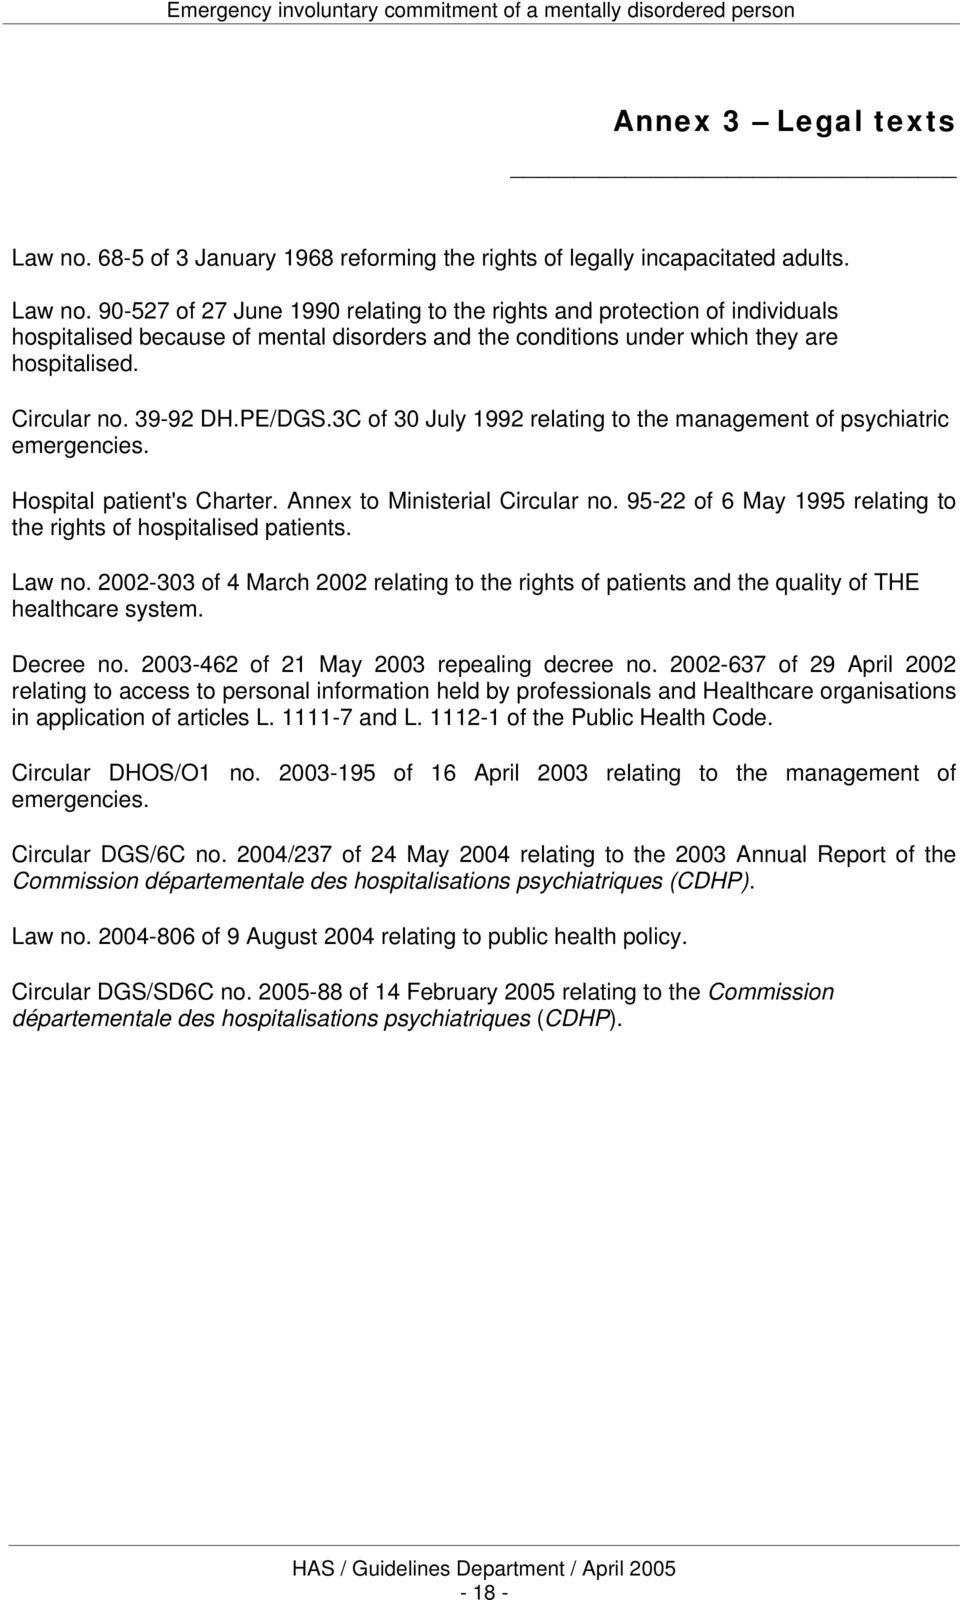 95-22 of 6 May 1995 relating to the rights of hospitalised patients. Law no. 2002-303 of 4 March 2002 relating to the rights of patients and the quality of THE healthcare system. Decree no.